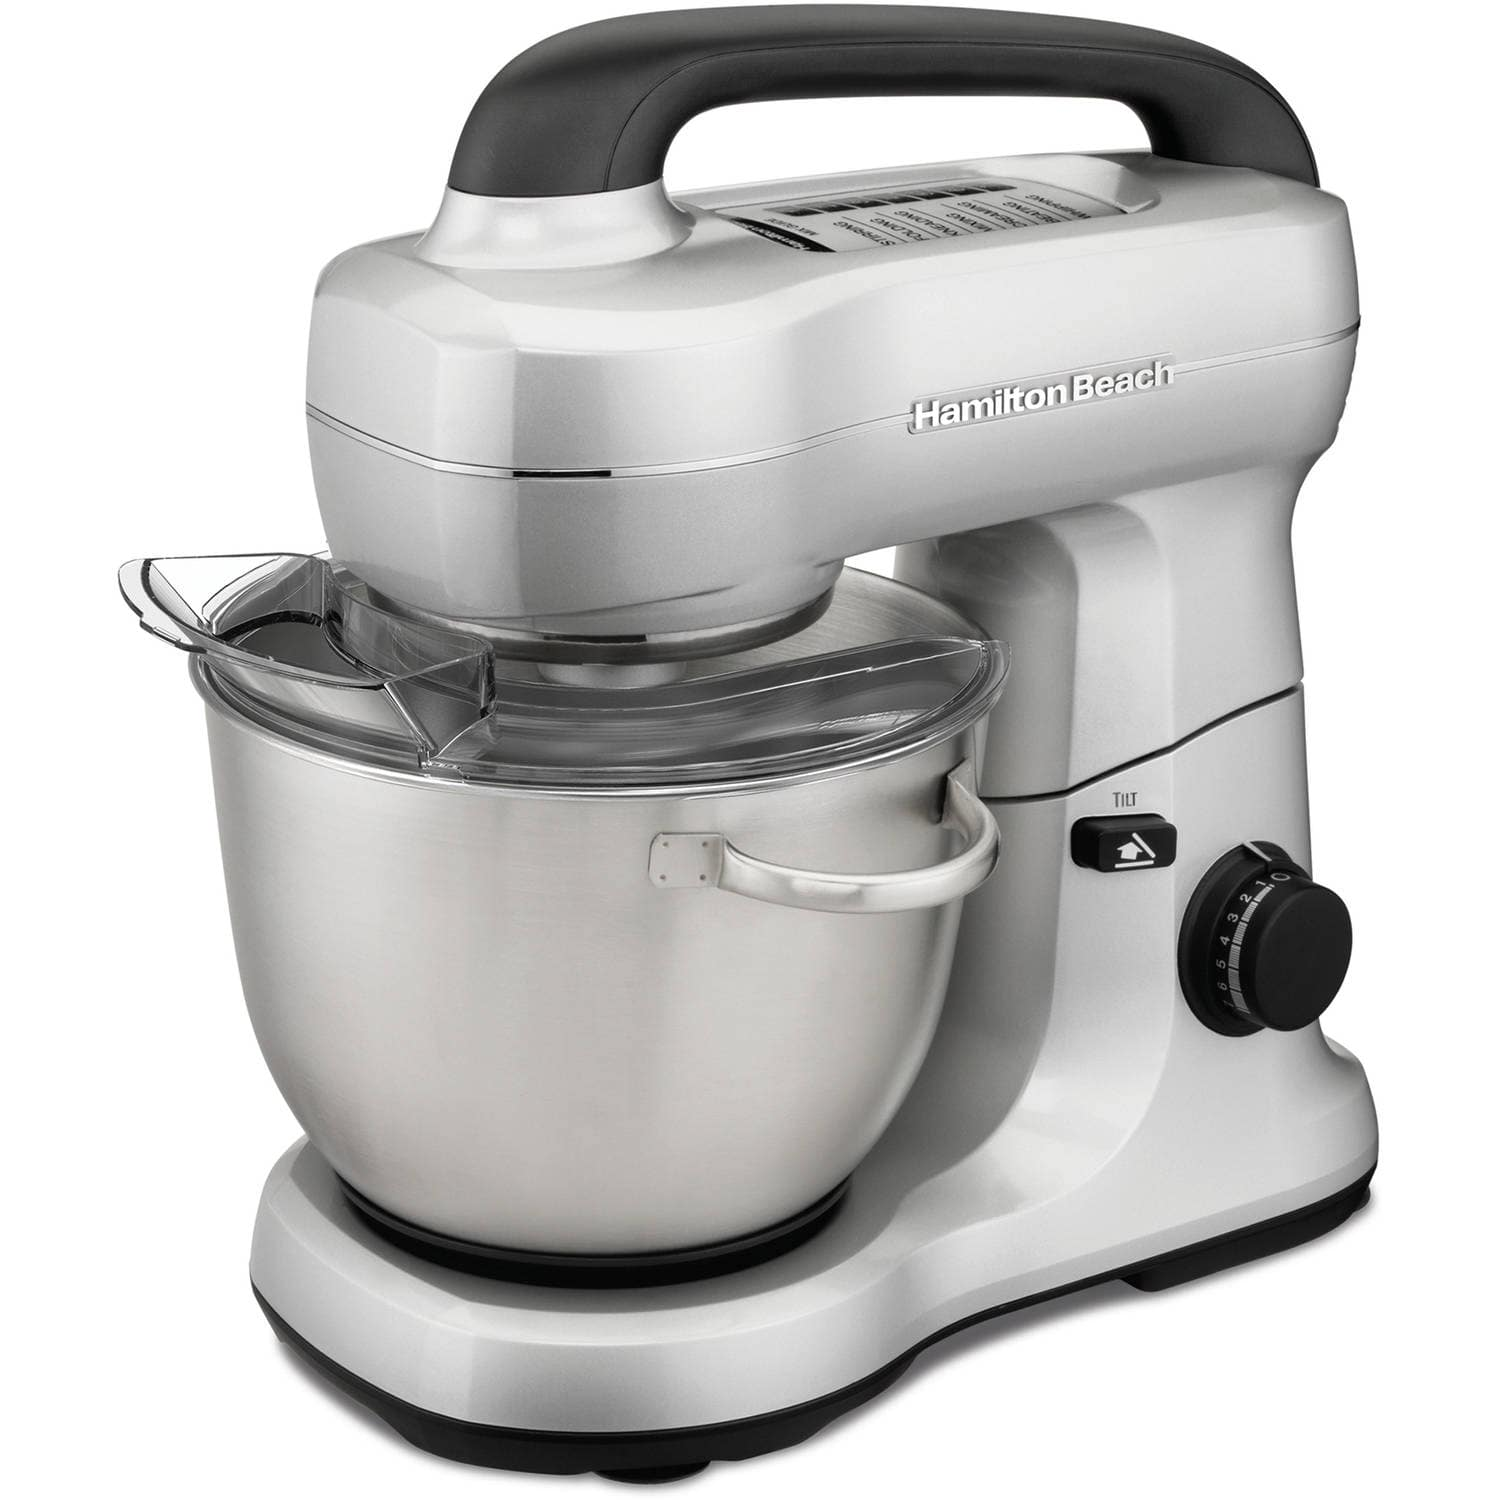 United states hottest deals in 12 hours best daily deal site top hamilton beach 7 speed stand mixer ymmv walmart clearance 40 fandeluxe Images